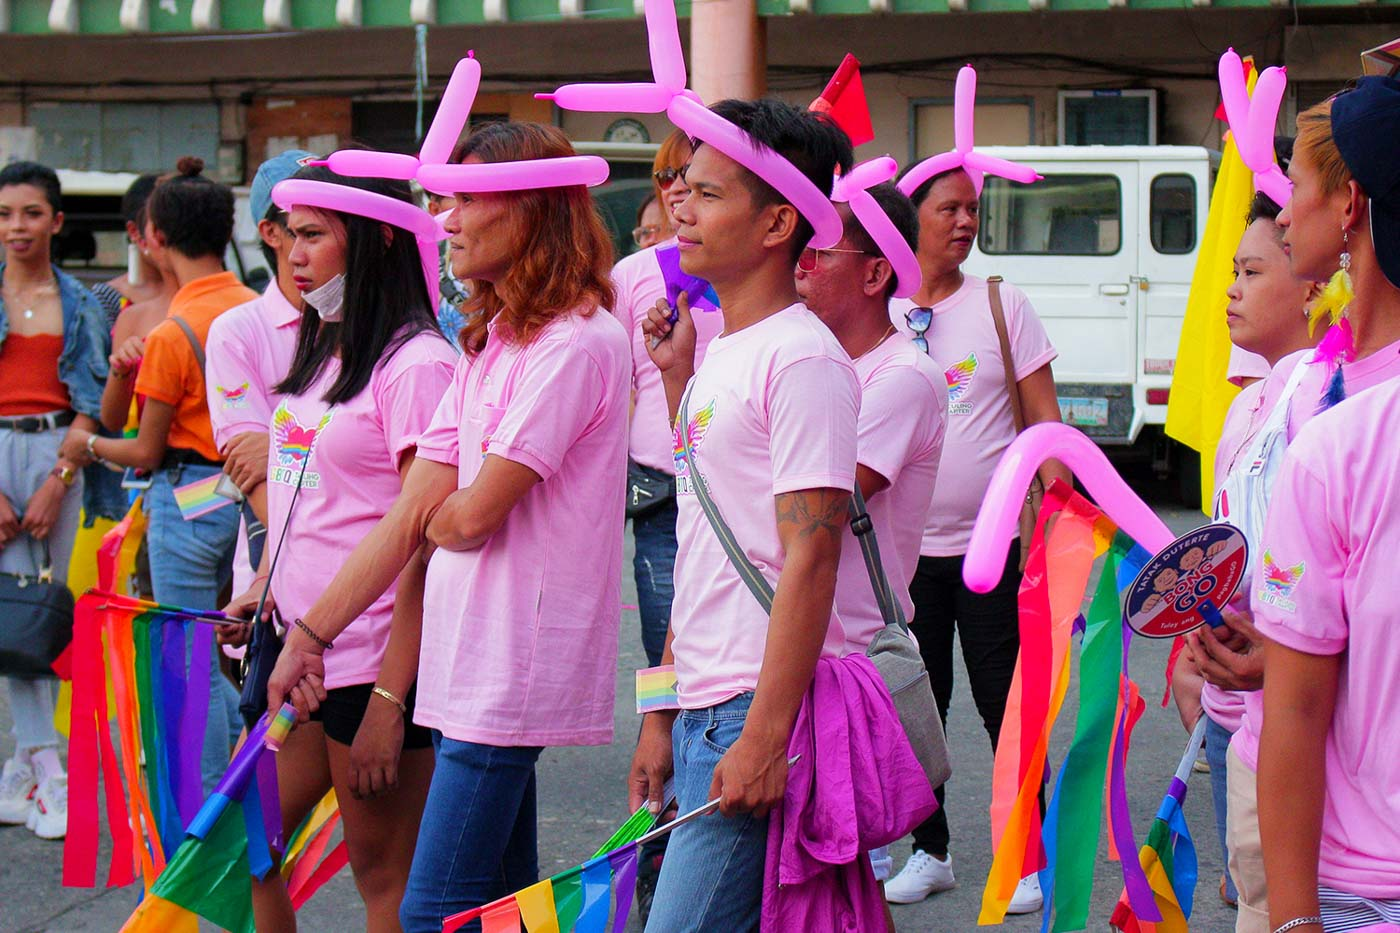 SUPPORT. Members of the Taculing LGBTQ chapter show unity during the Pride parade in Bacolod City on Saturday, June 22. Photo by Nichol Francis Anduyan